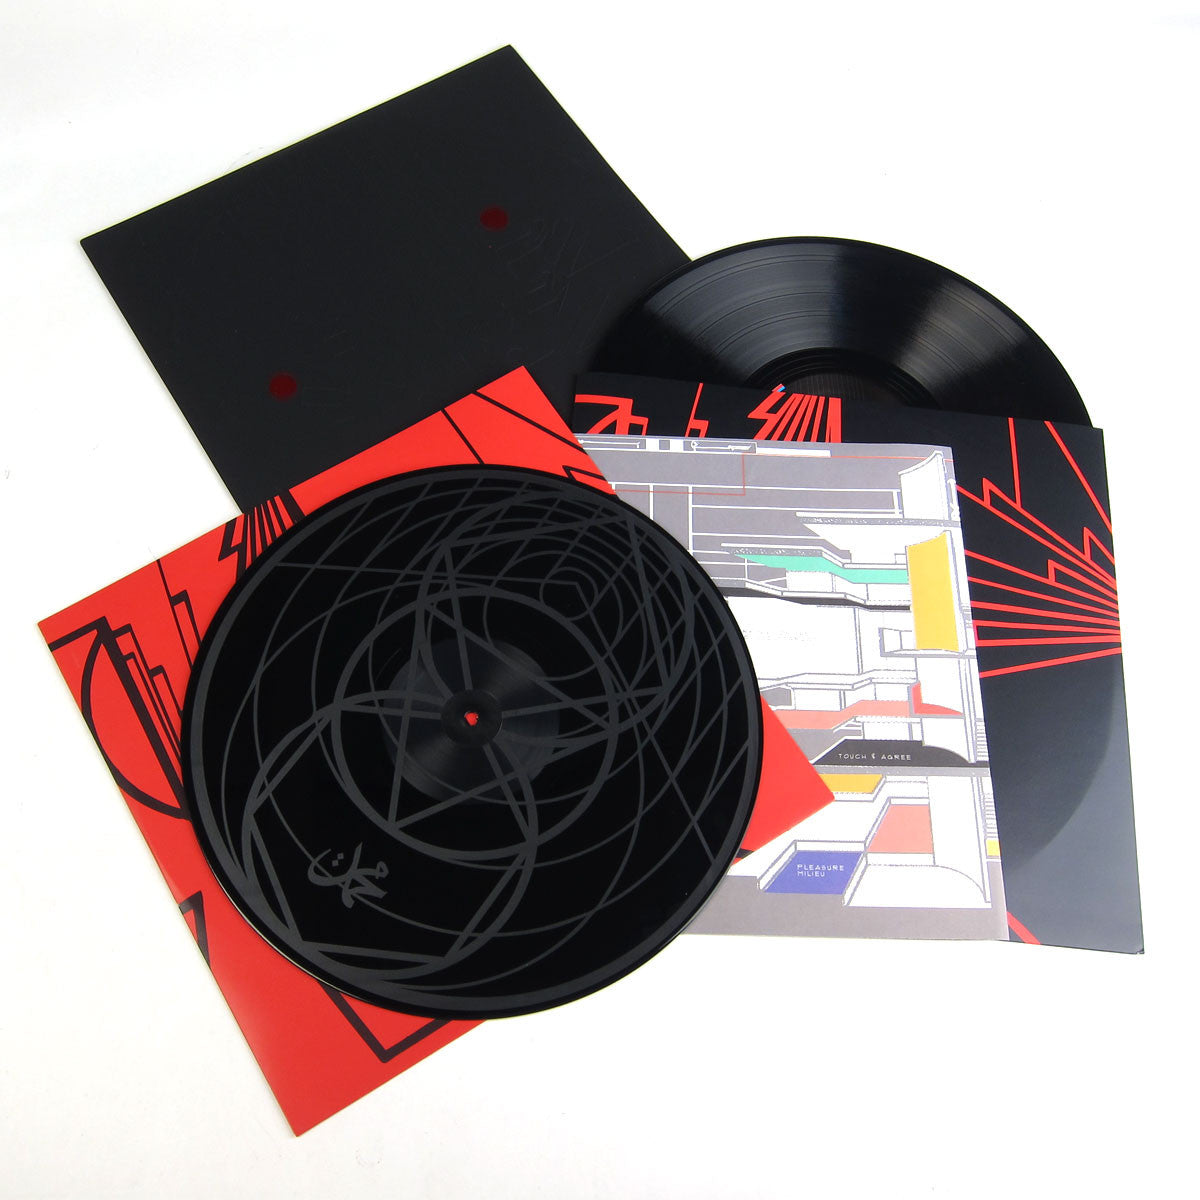 Shabazz Palaces: Lese Majesty (Etched Vinyl, Free MP3) Vinyl 2LP